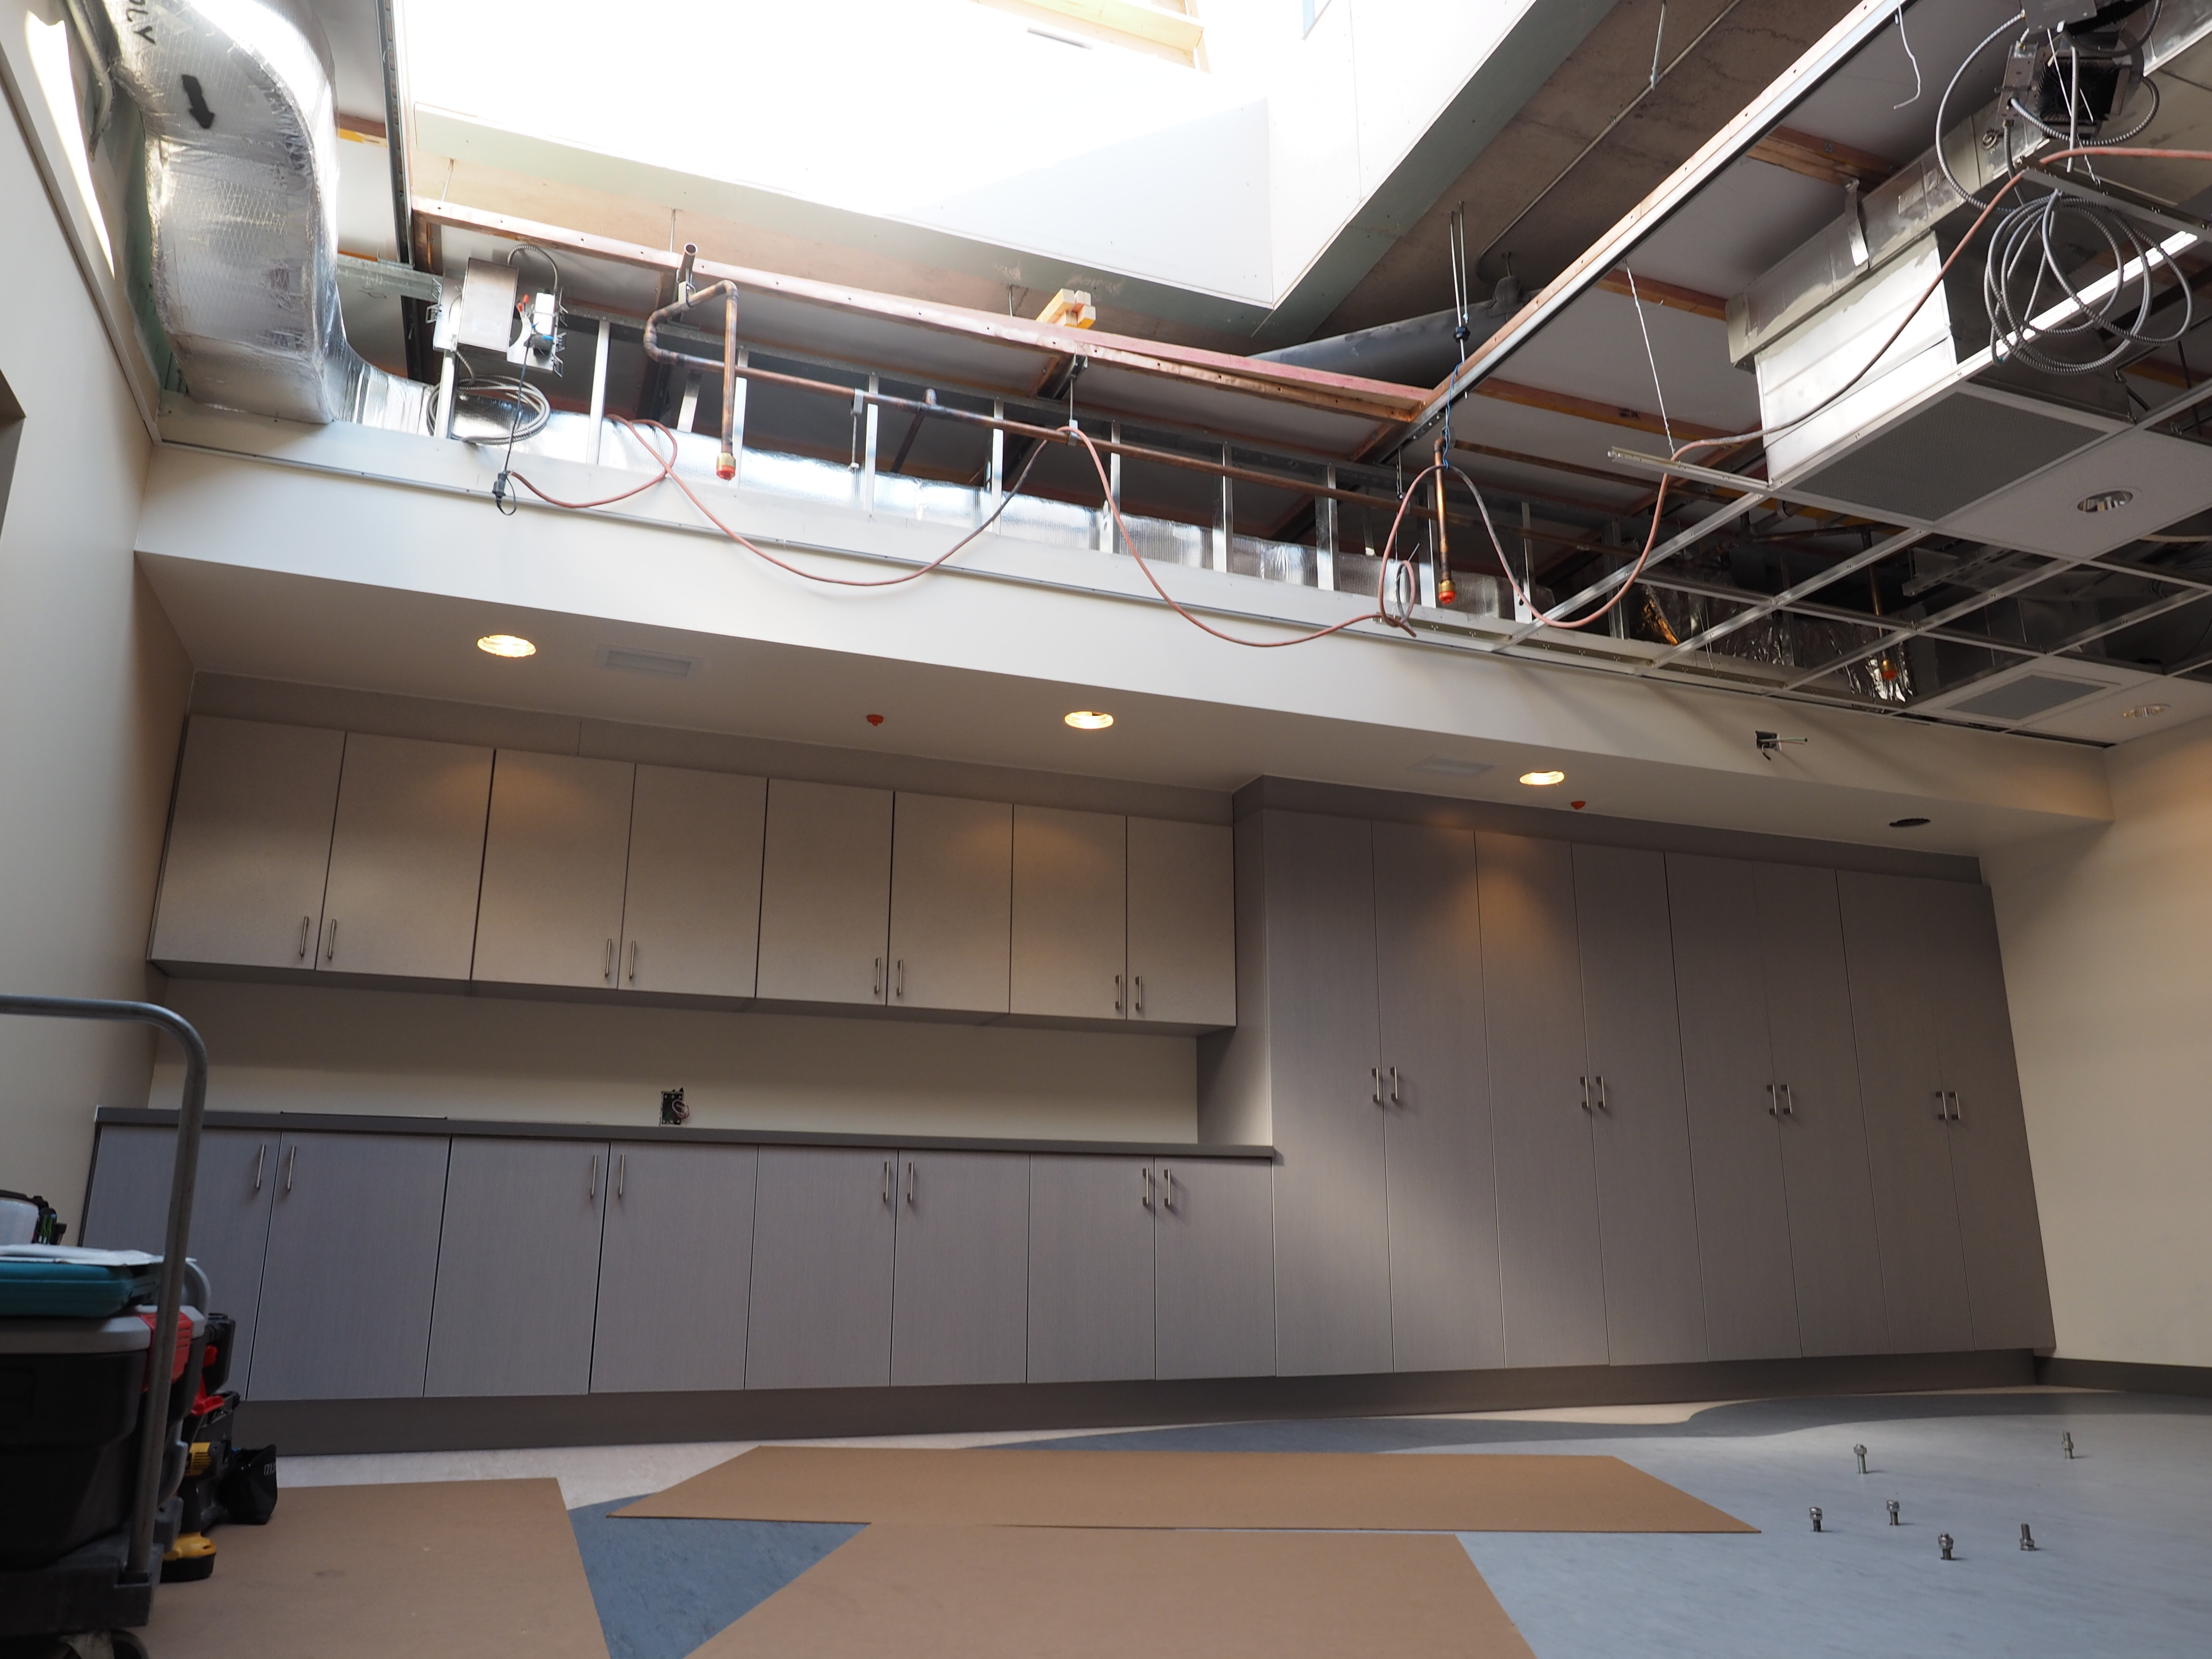 Roof access for lowering the MRI into the specially designed room.